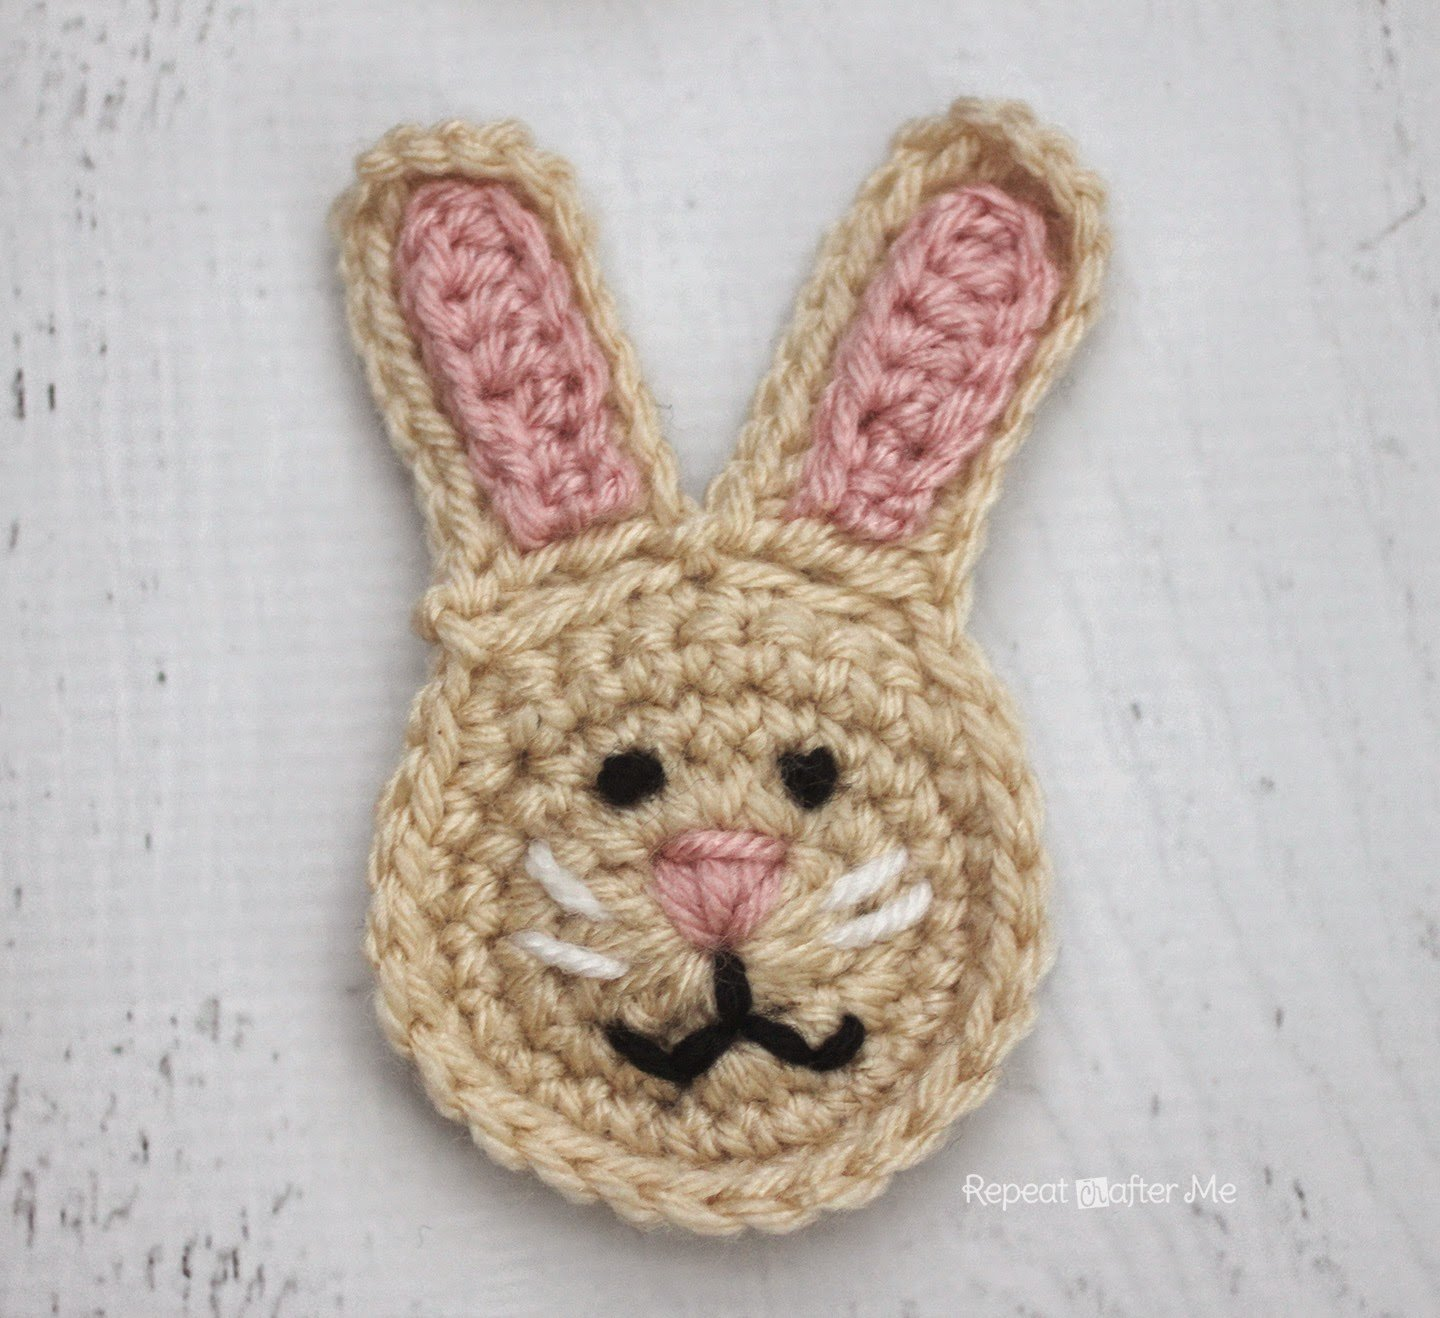 R is for Rabbit: Crochet Rabbit Applique by Repeat Crafter Me